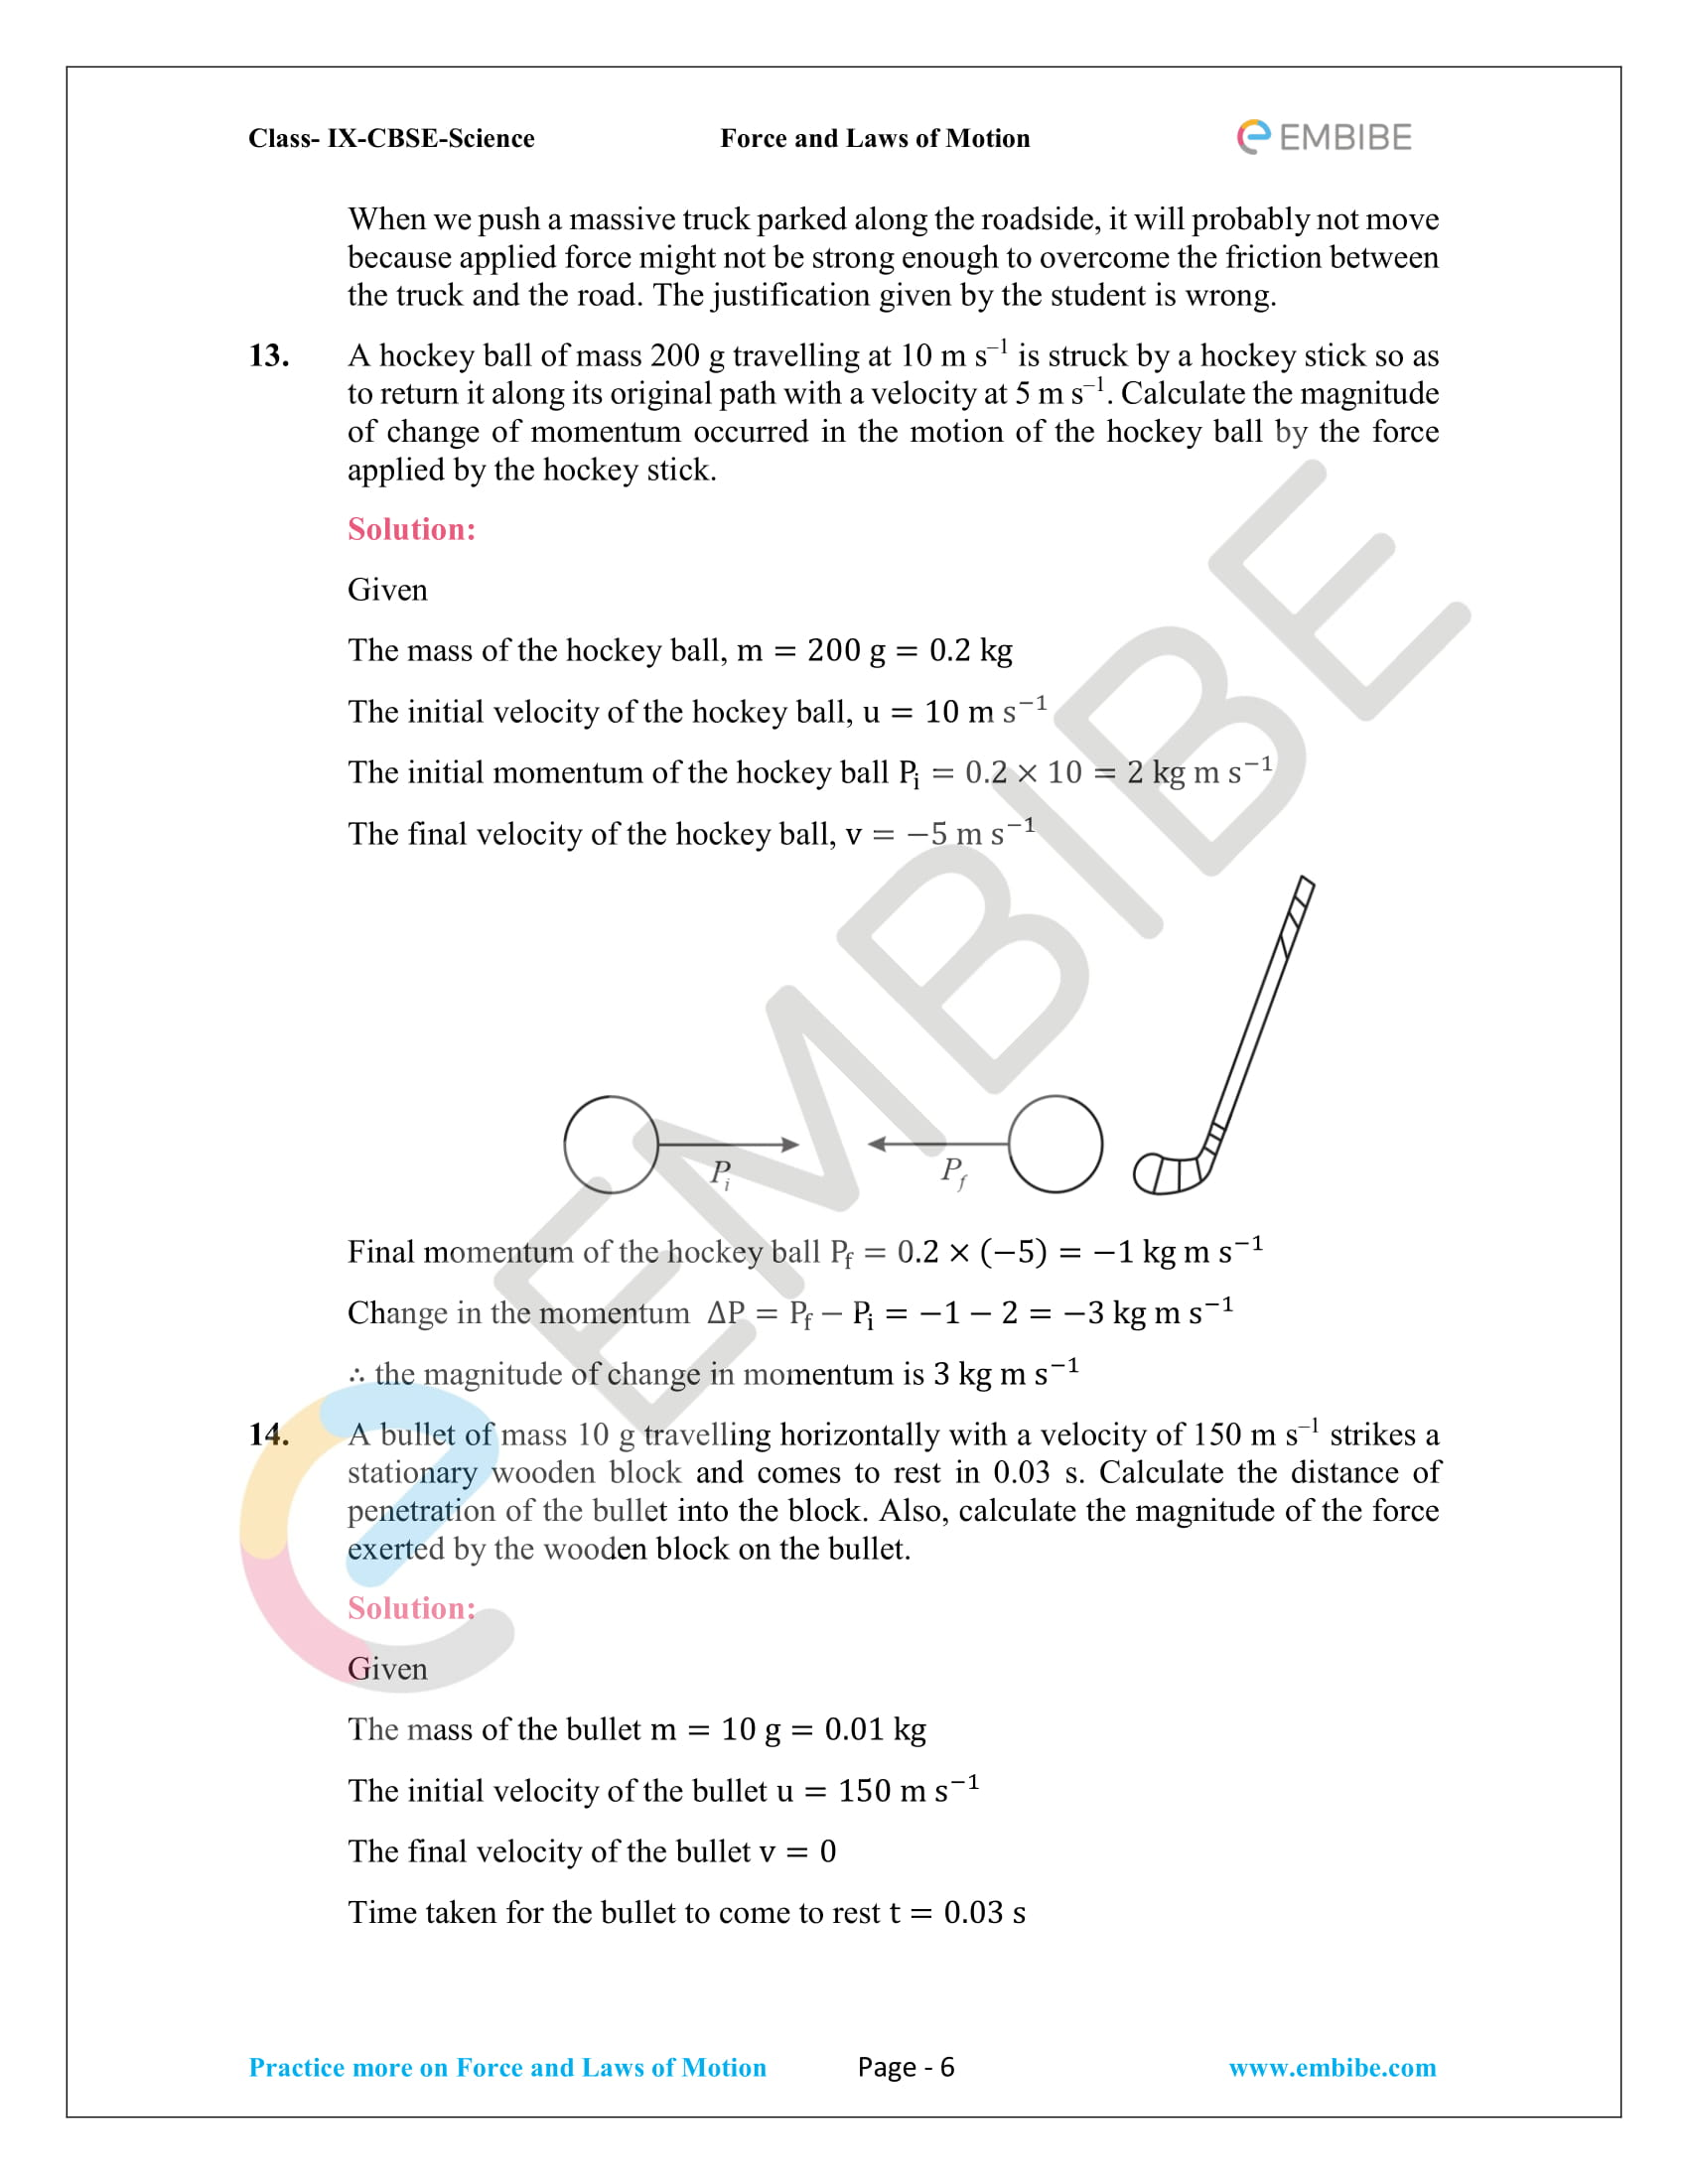 CBSE NCERT Solutions For Class 9 Science Chapter 9 – Force And Laws Of Motion - 6